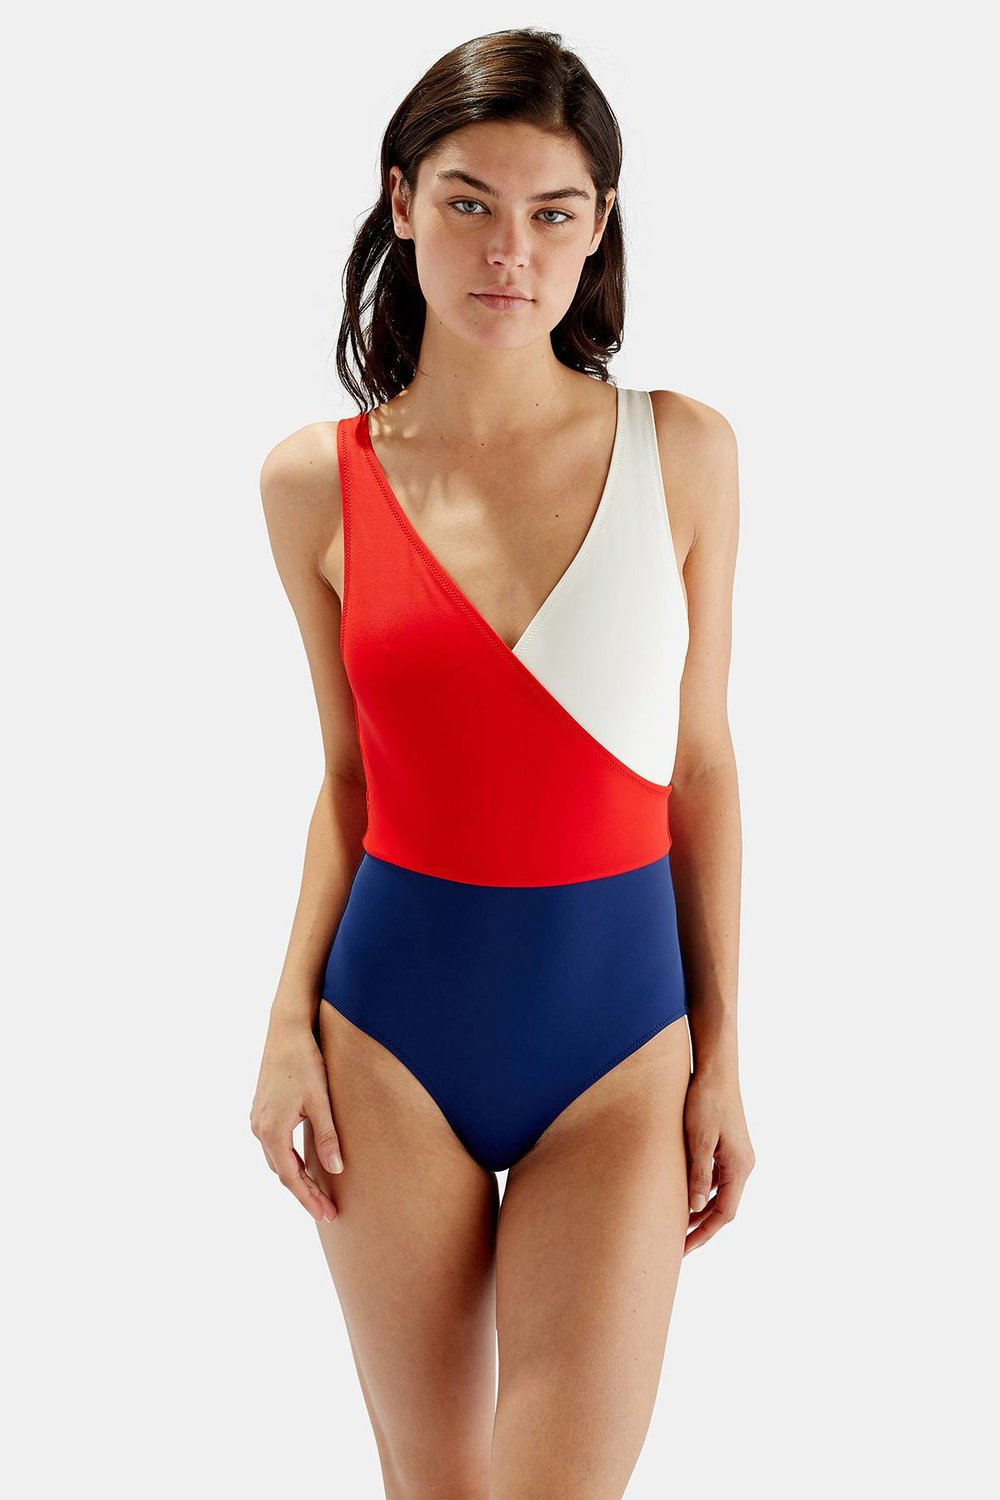 $158 from Solid and Striped